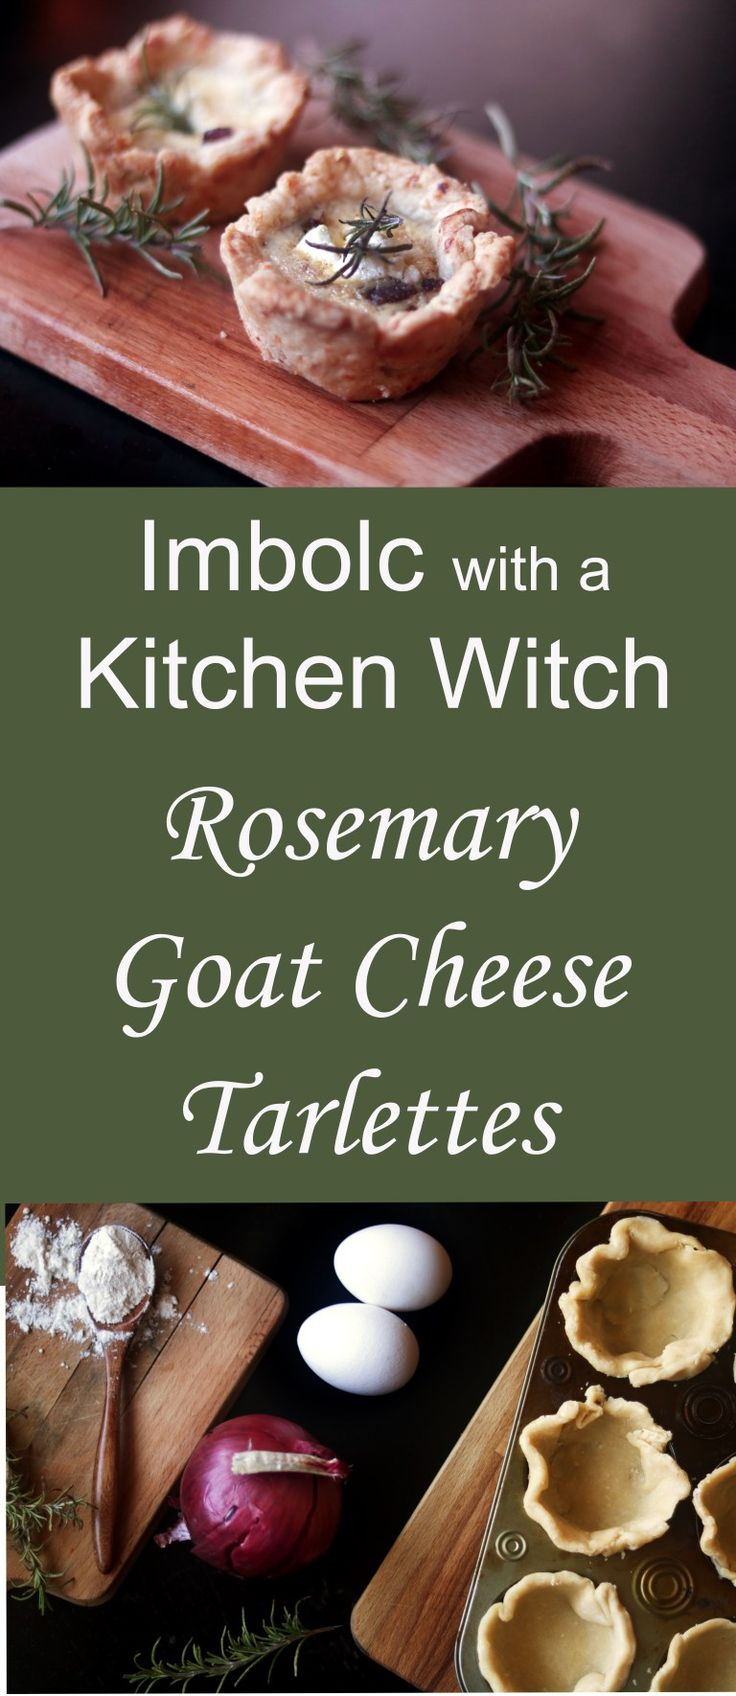 Imbolc with a Kitchen Witch: Goat Cheese & Balsamic Onion Tartlettes